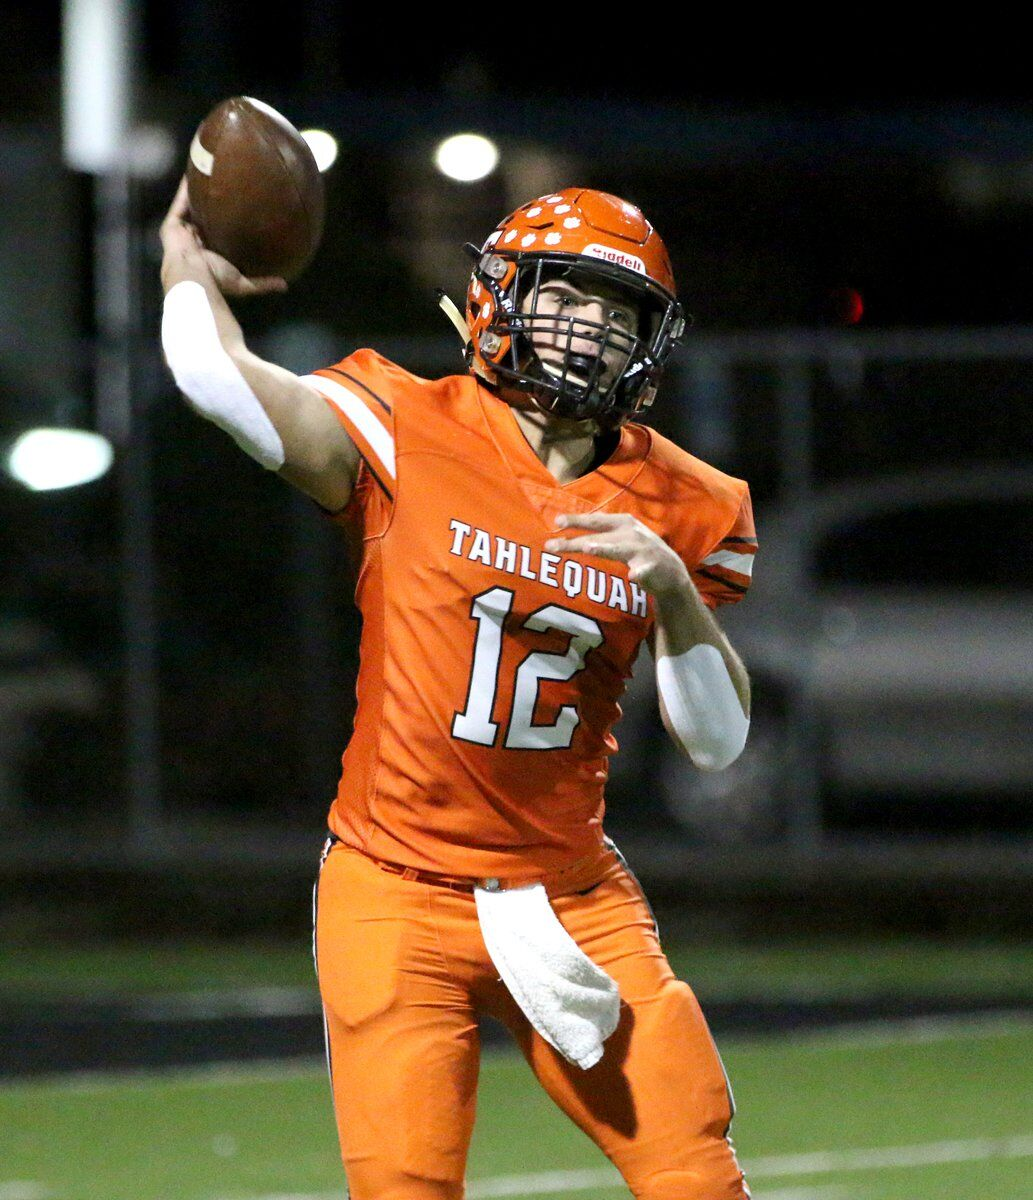 MOVING ON: Tigers hold on to defeat Edison